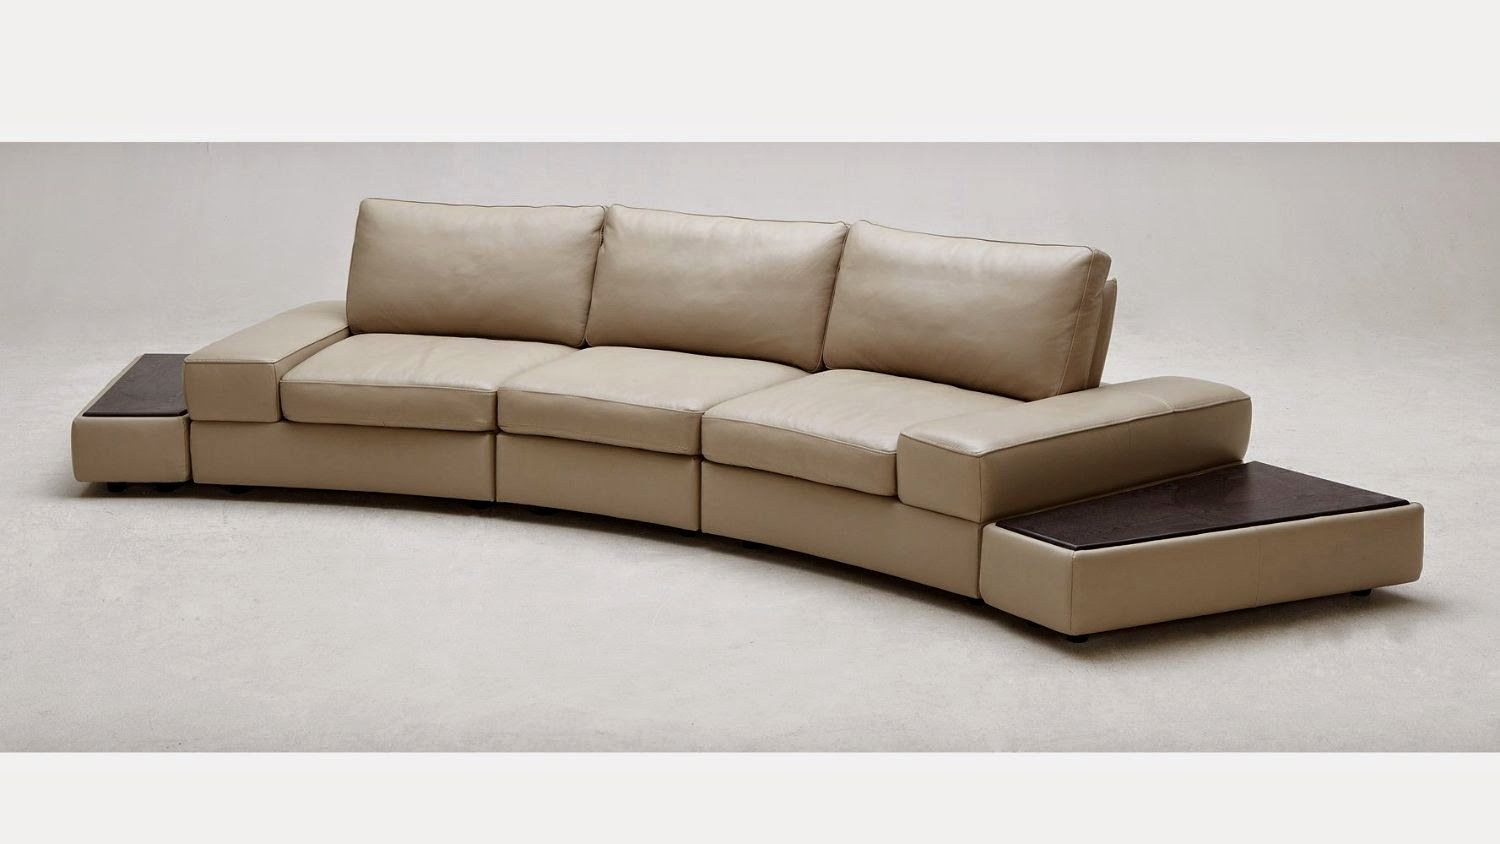 contemporary mid century modern sectional sofa photo-Modern Mid Century Modern Sectional sofa Concept